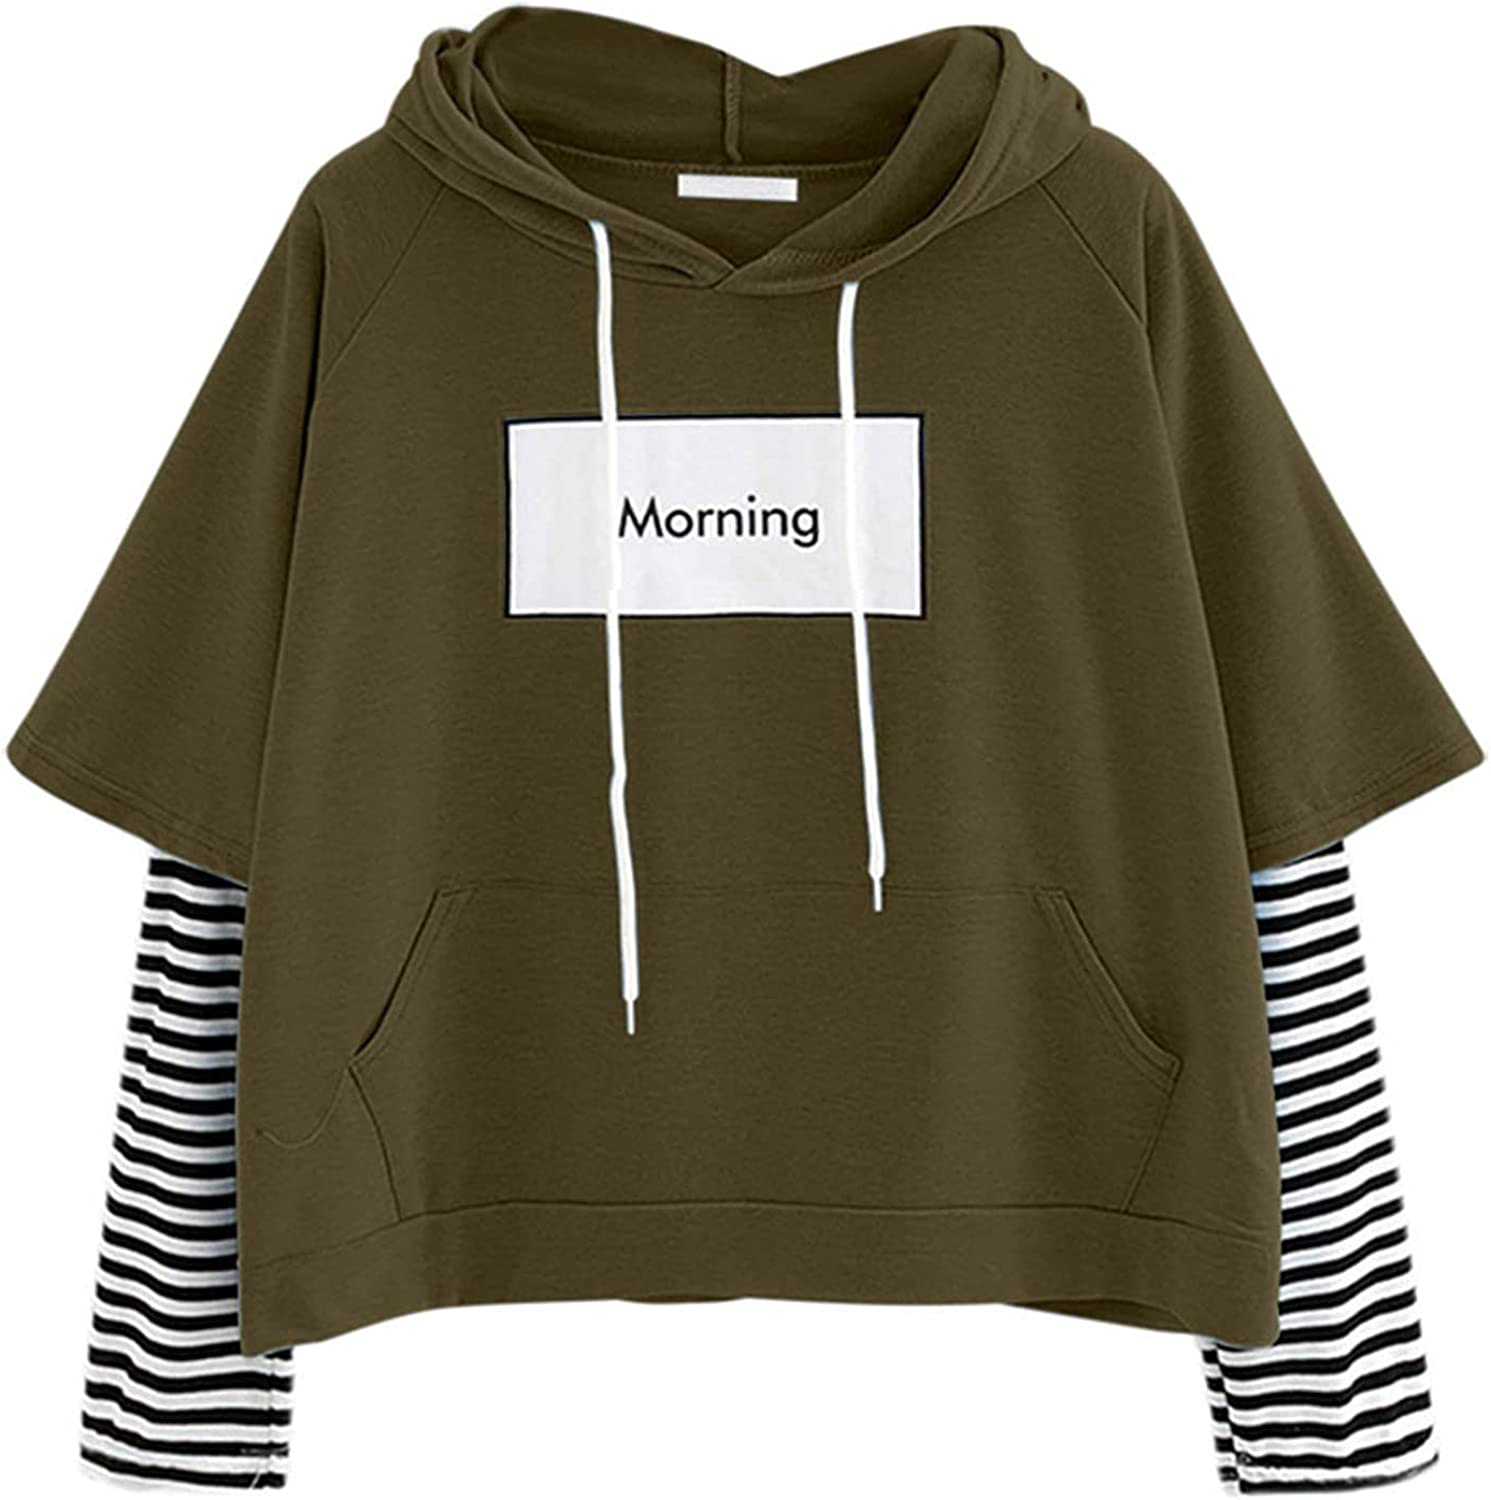 Striped Color Block Hoodies for Womens Teen Girls Loose Casual Tops Shirts Long Sleeve Drawstring Pullover Sweatshirts